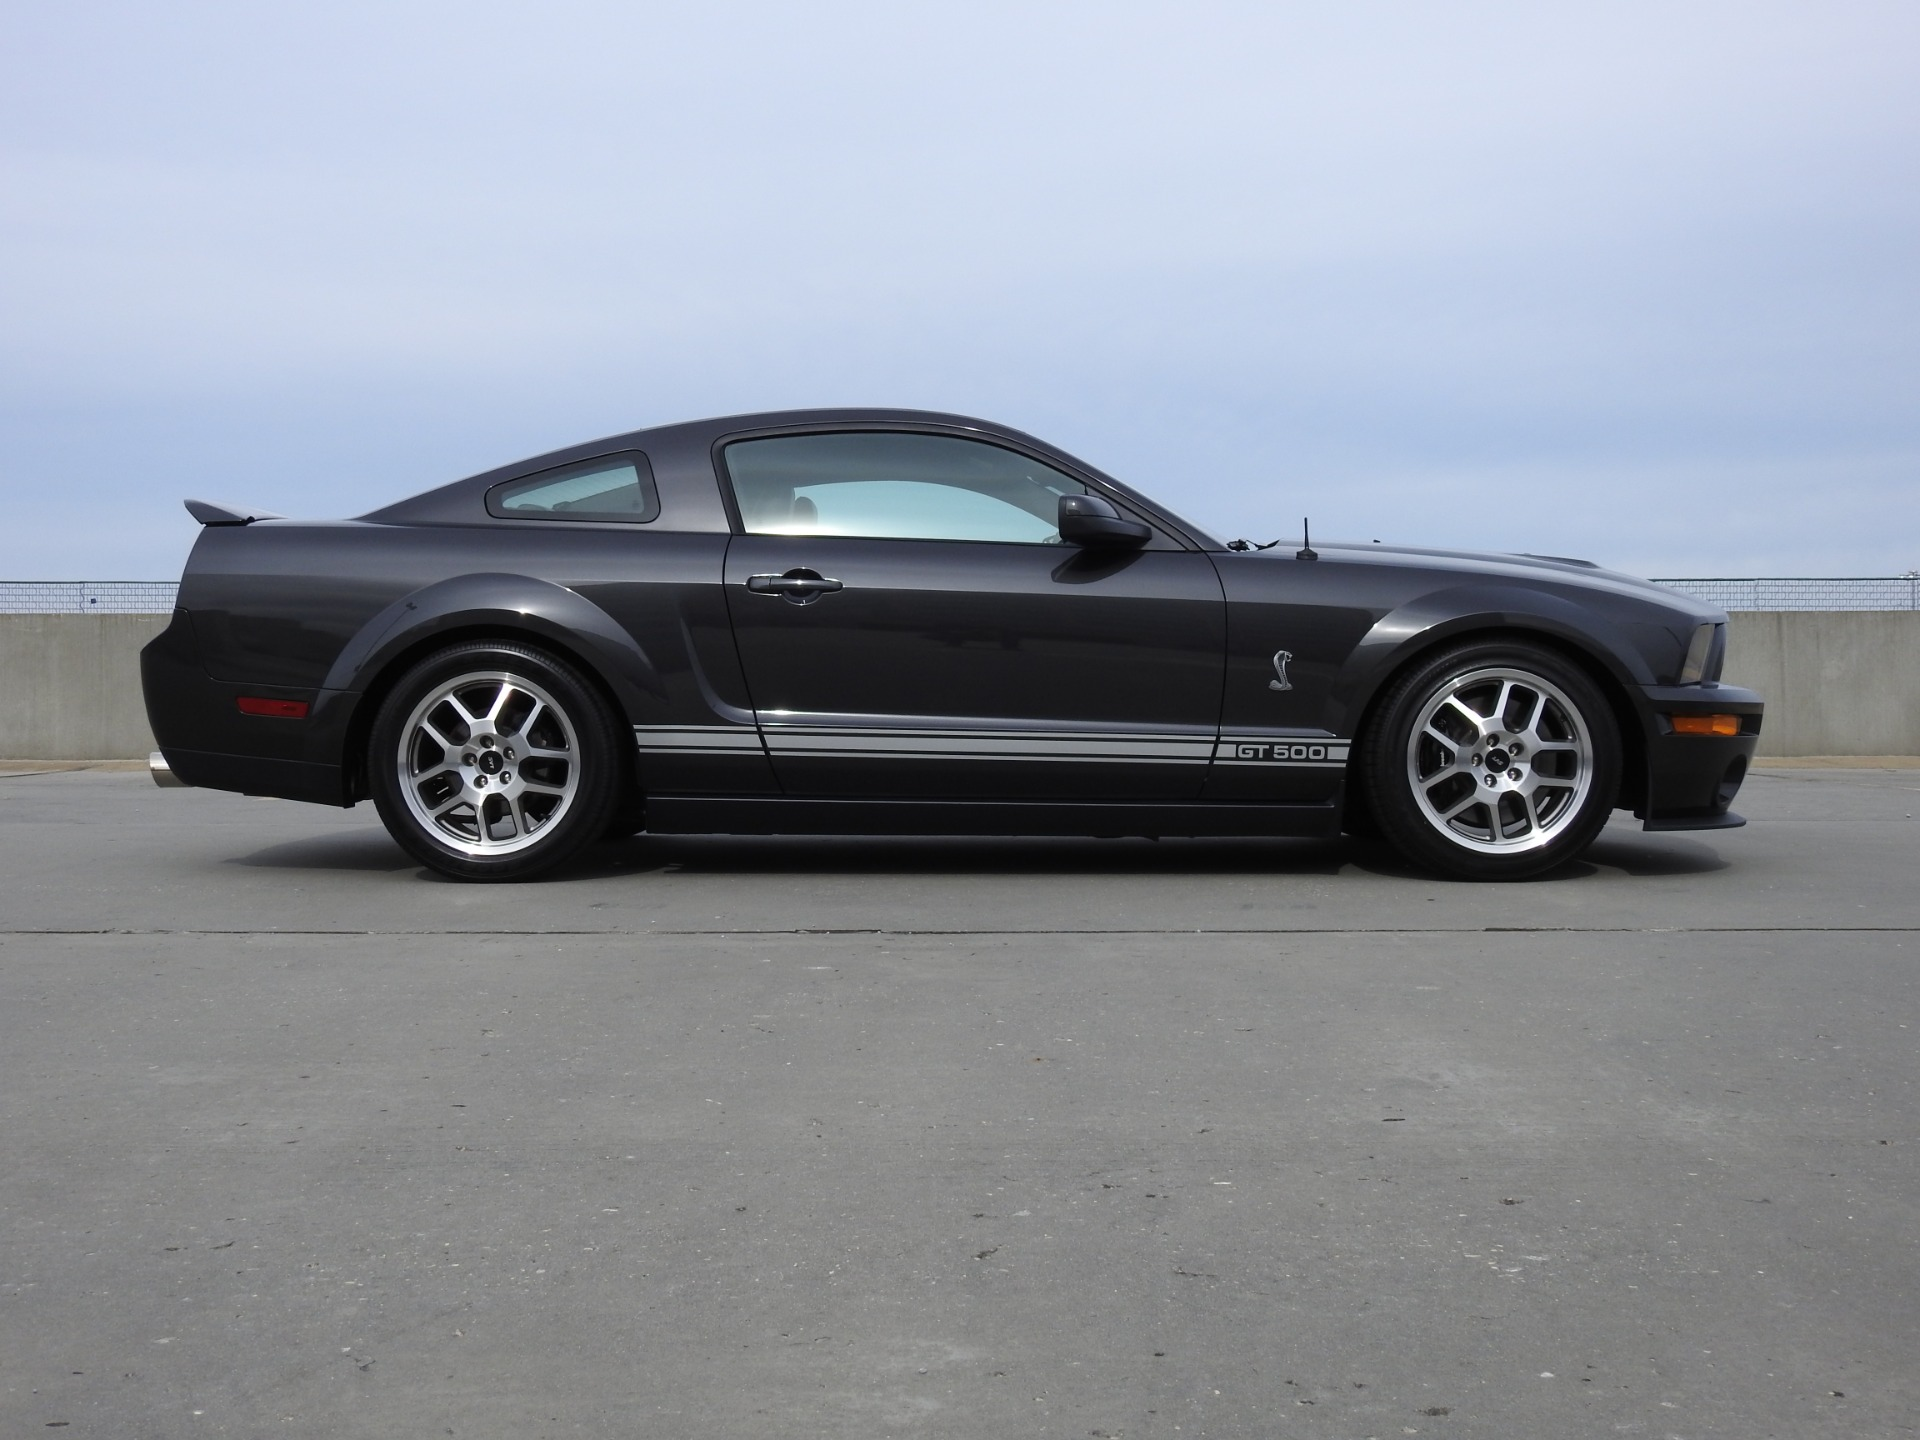 Used-2007-Ford-Mustang-Shelby-GT500-**-Only-5K-Miles-**-Jackson-MS